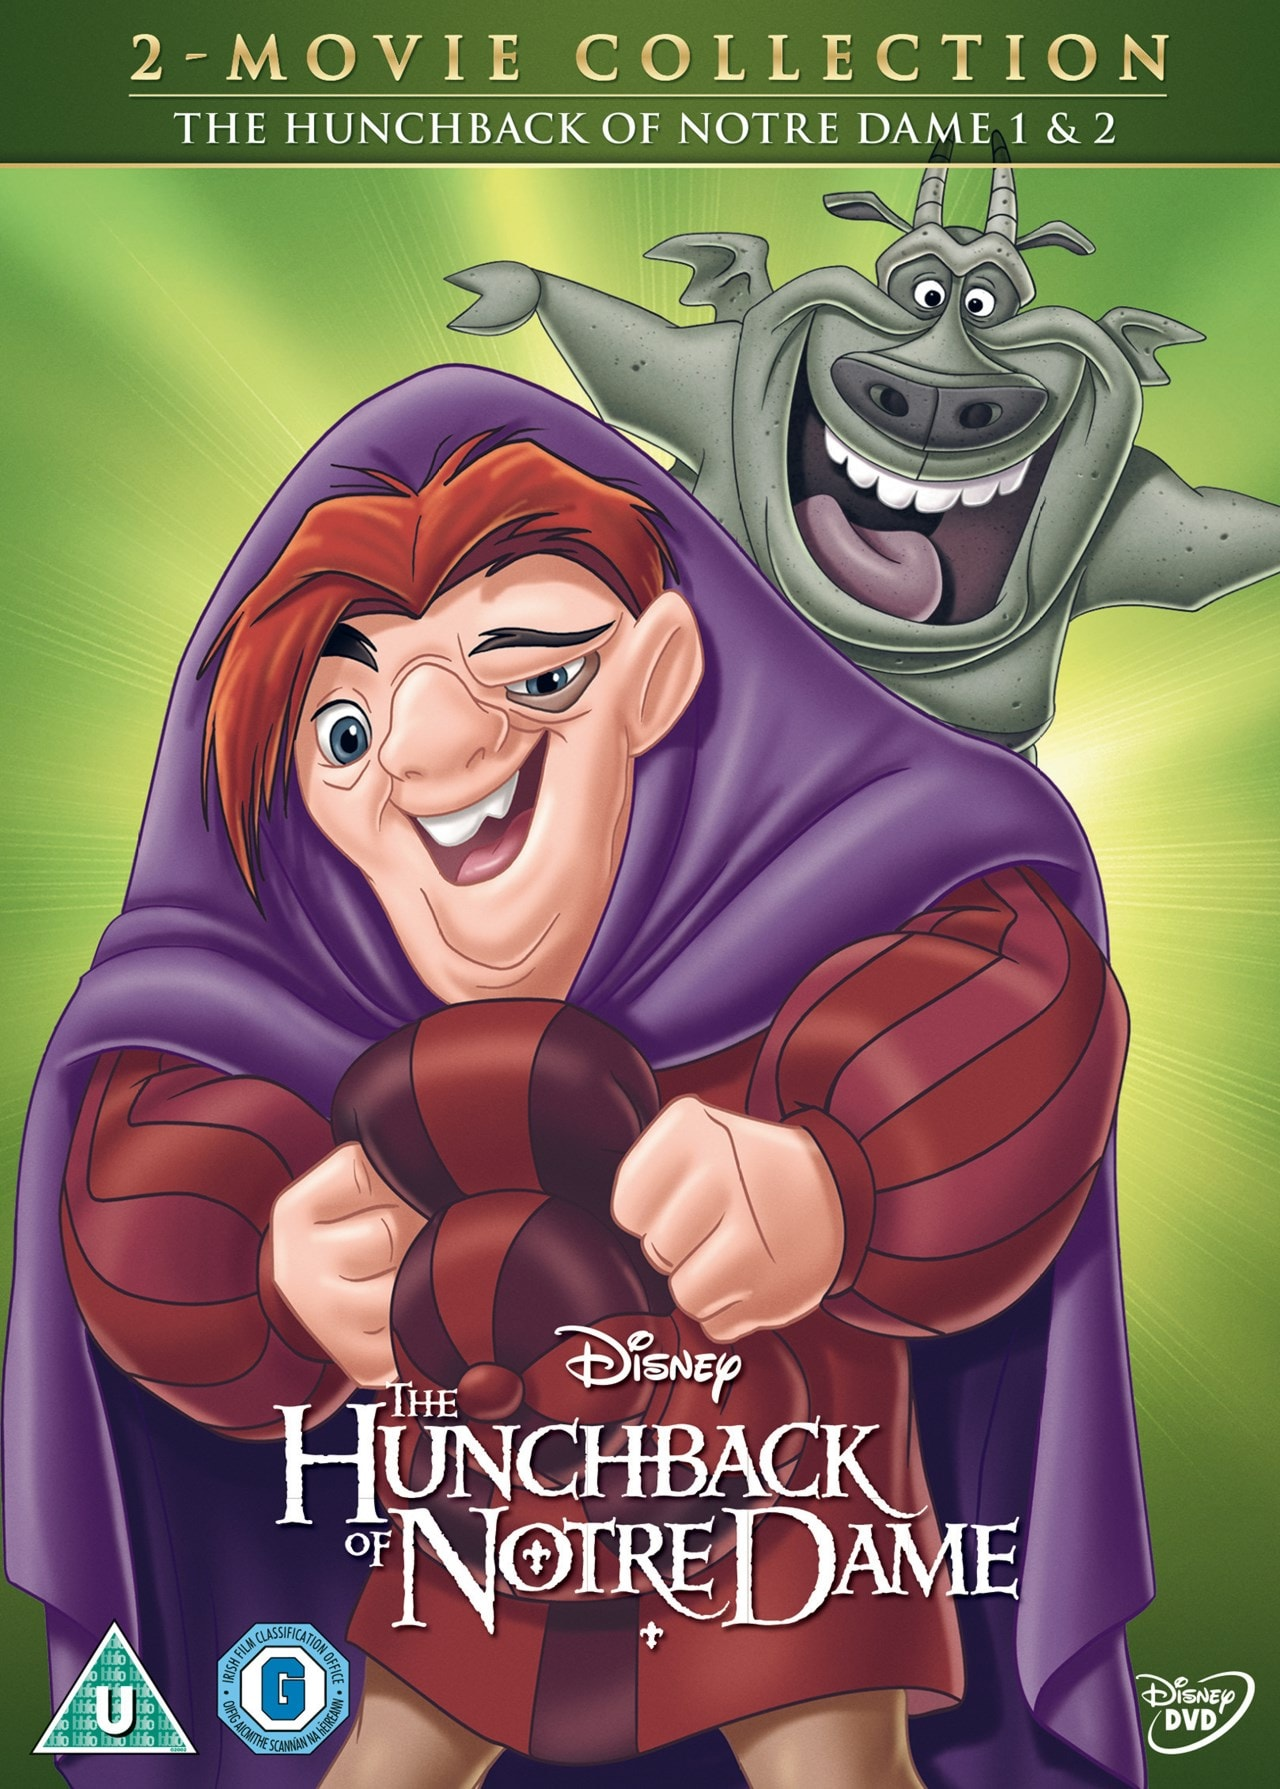 The Hunchback of Notre Dame: 2-movie Collection - 3